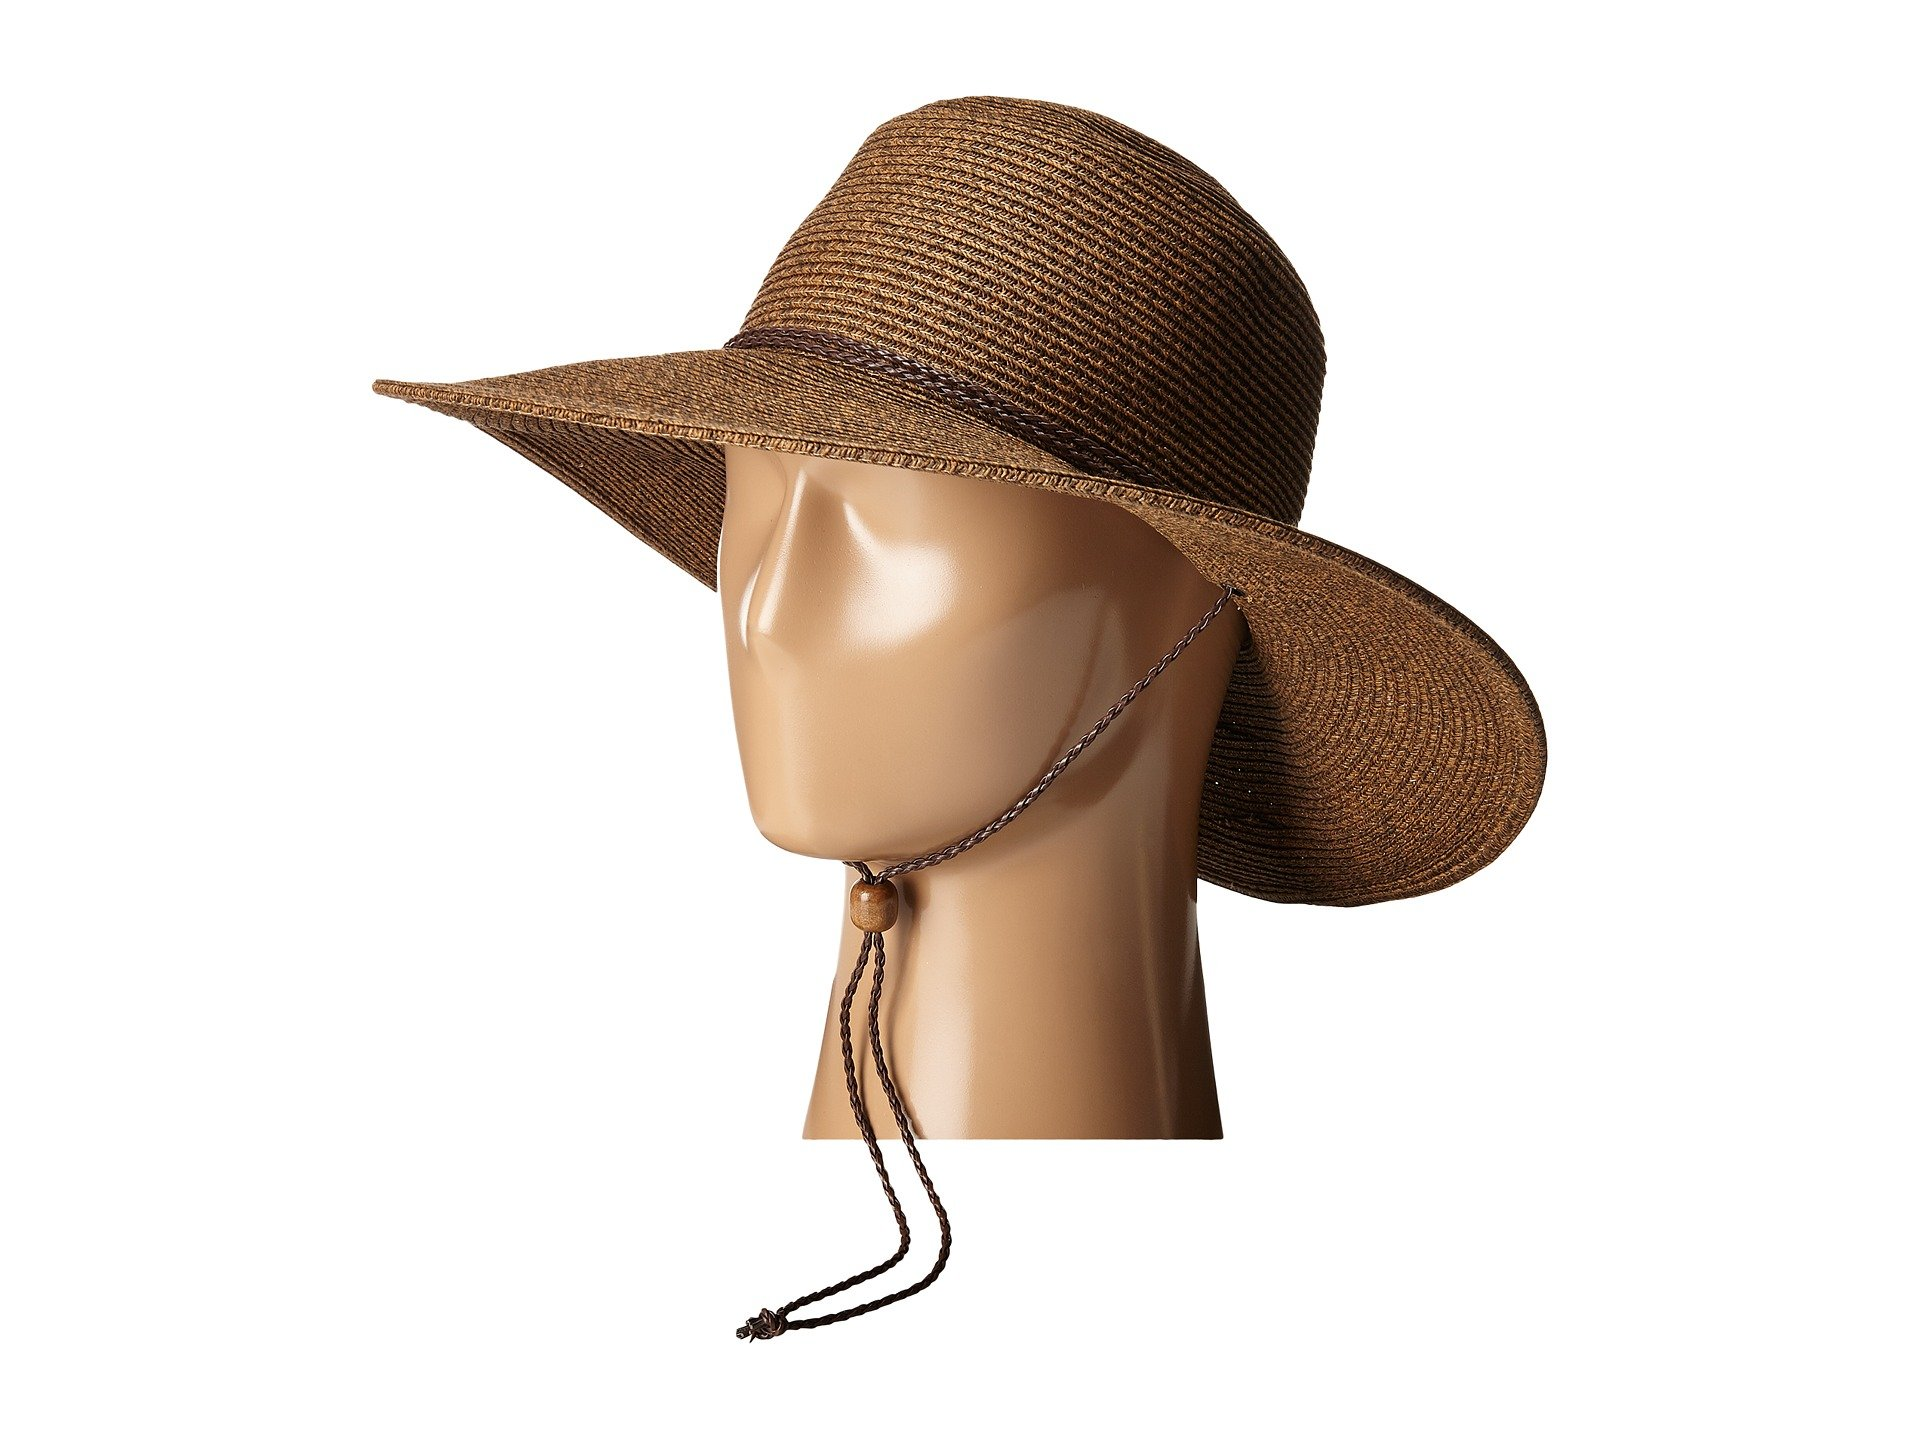 UBM4453 4 Inch Brim Sun Hat with Twisted Adjustable Chin Cord 7443184d9a3a